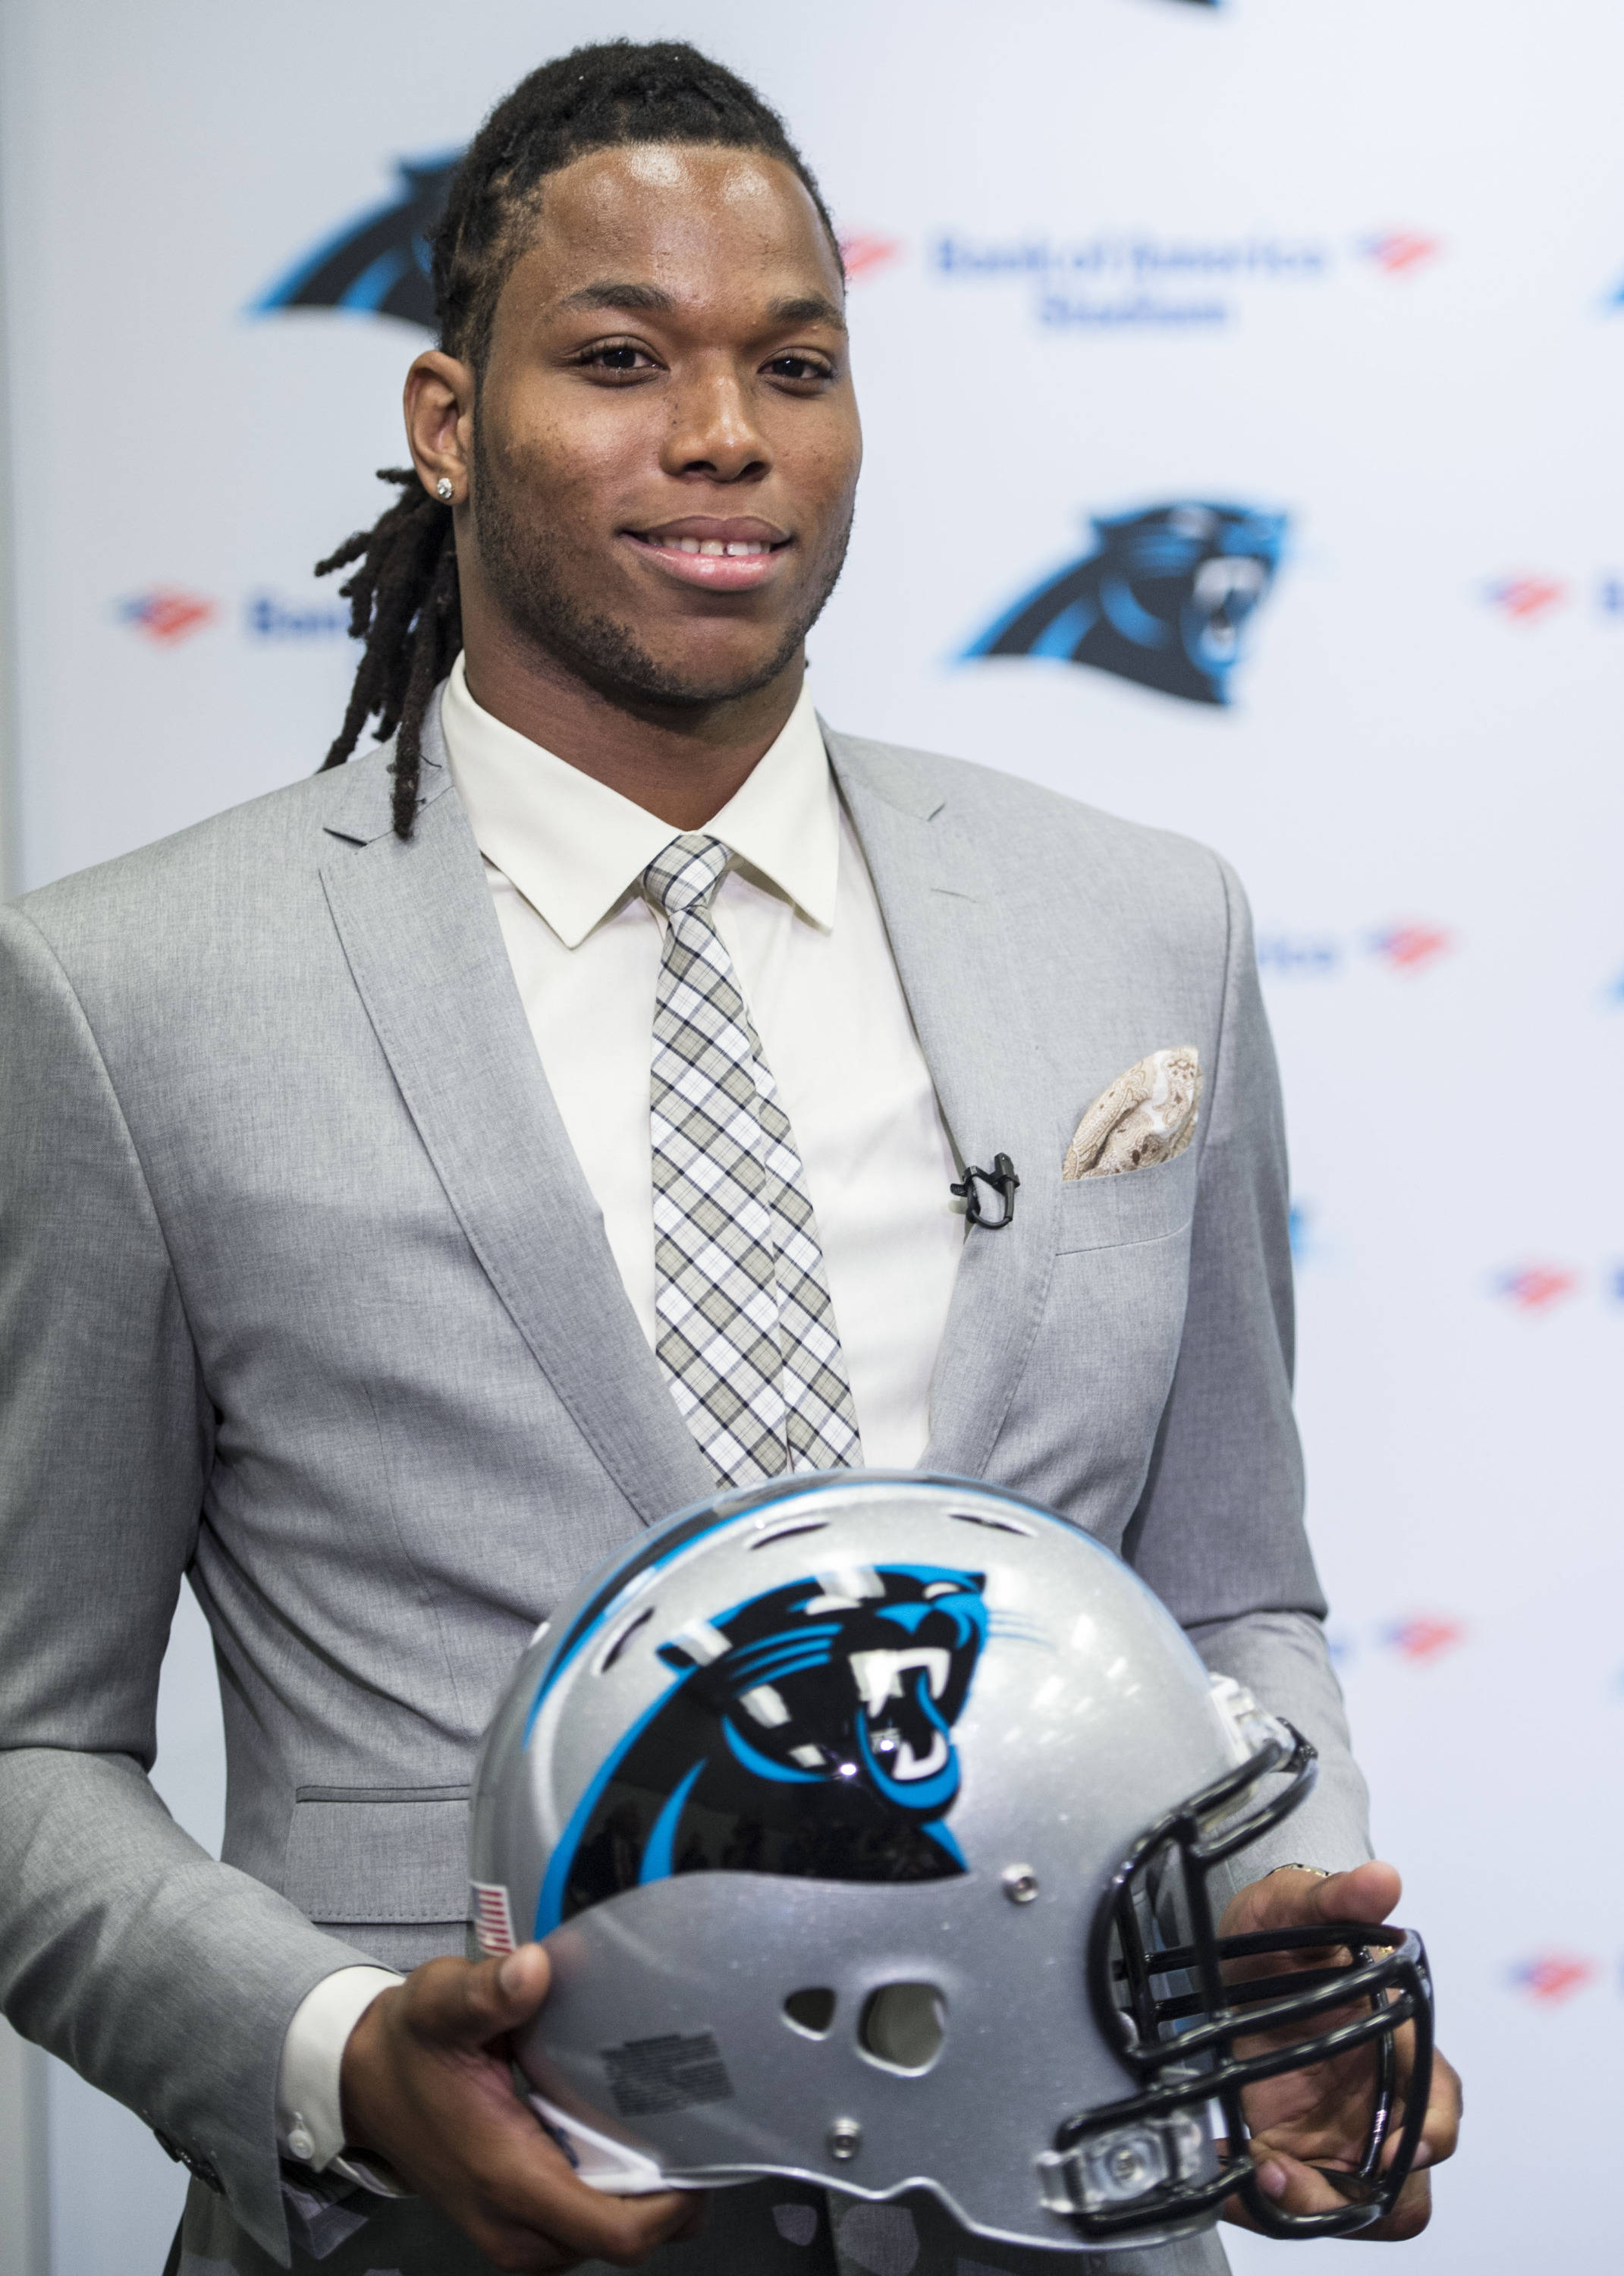 First round draft pick Kelvin Benjamin, a wide receiver from Florida State, visits Bank of American Stadium on Friday, May 9, 2014.